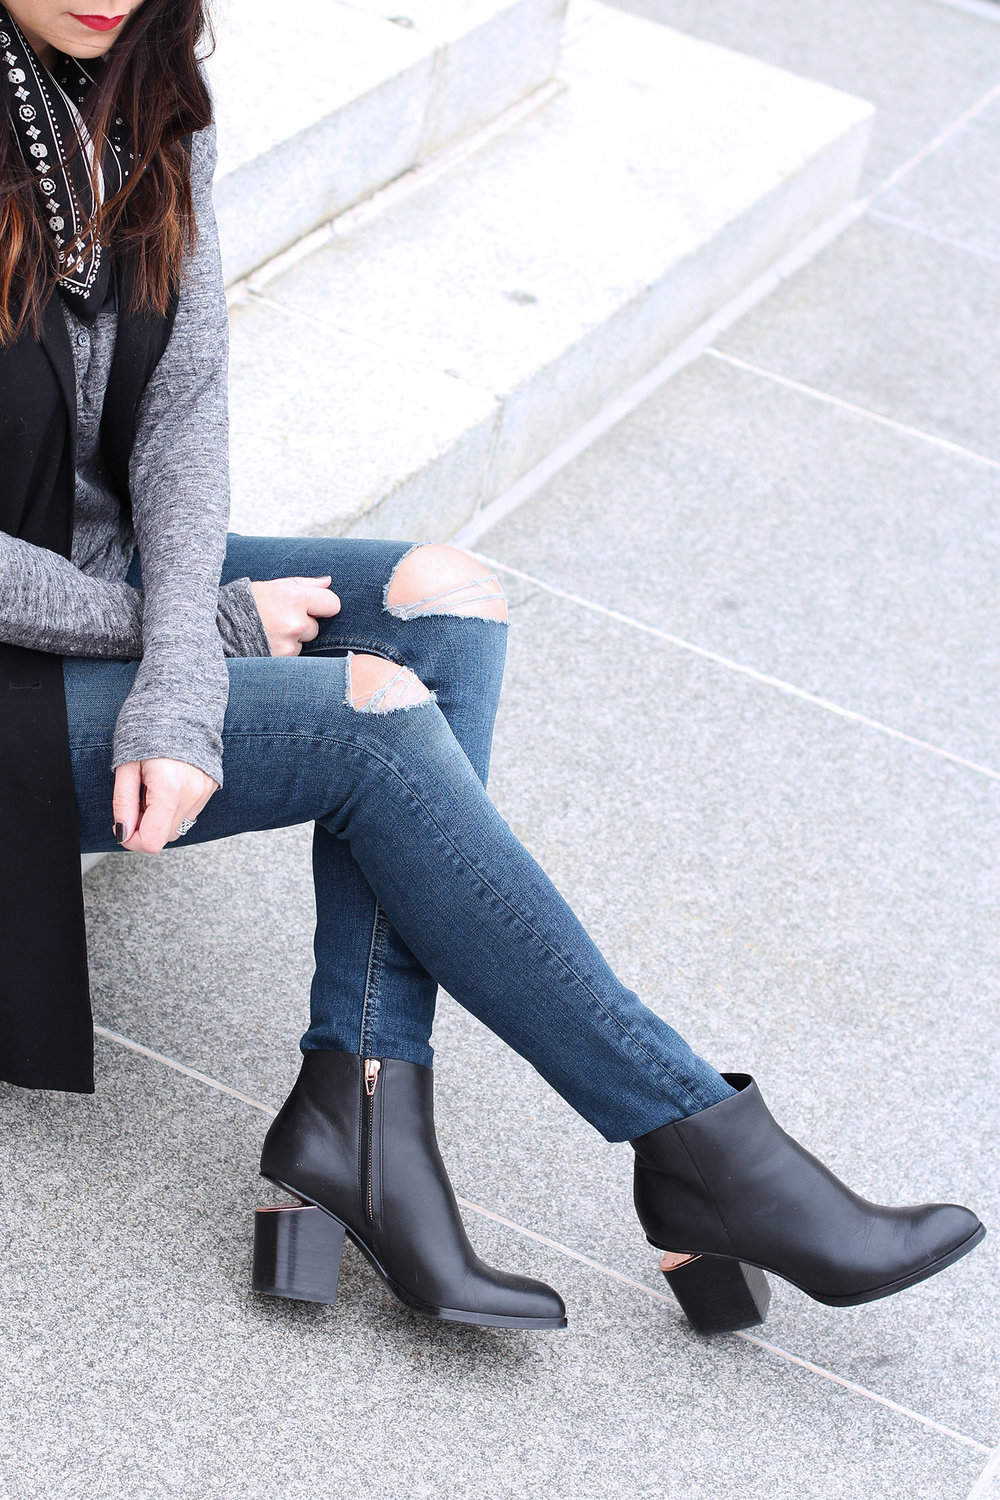 Alexander Wang Boots, Rag and Bone Jeans